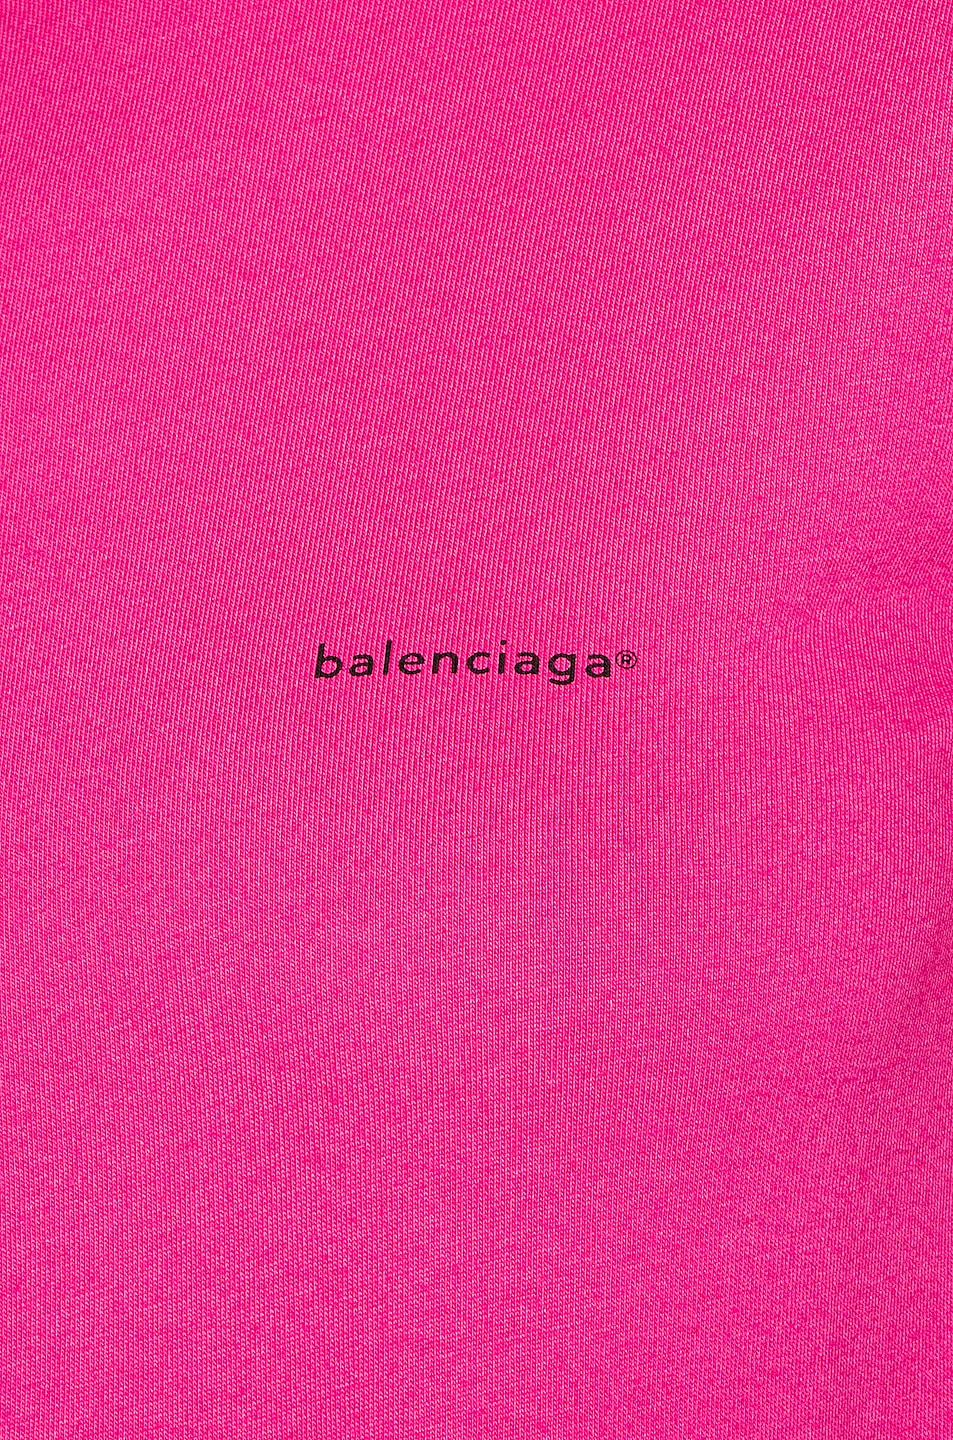 Image 5 of Balenciaga Copyright Fitted T Shirt in Pink